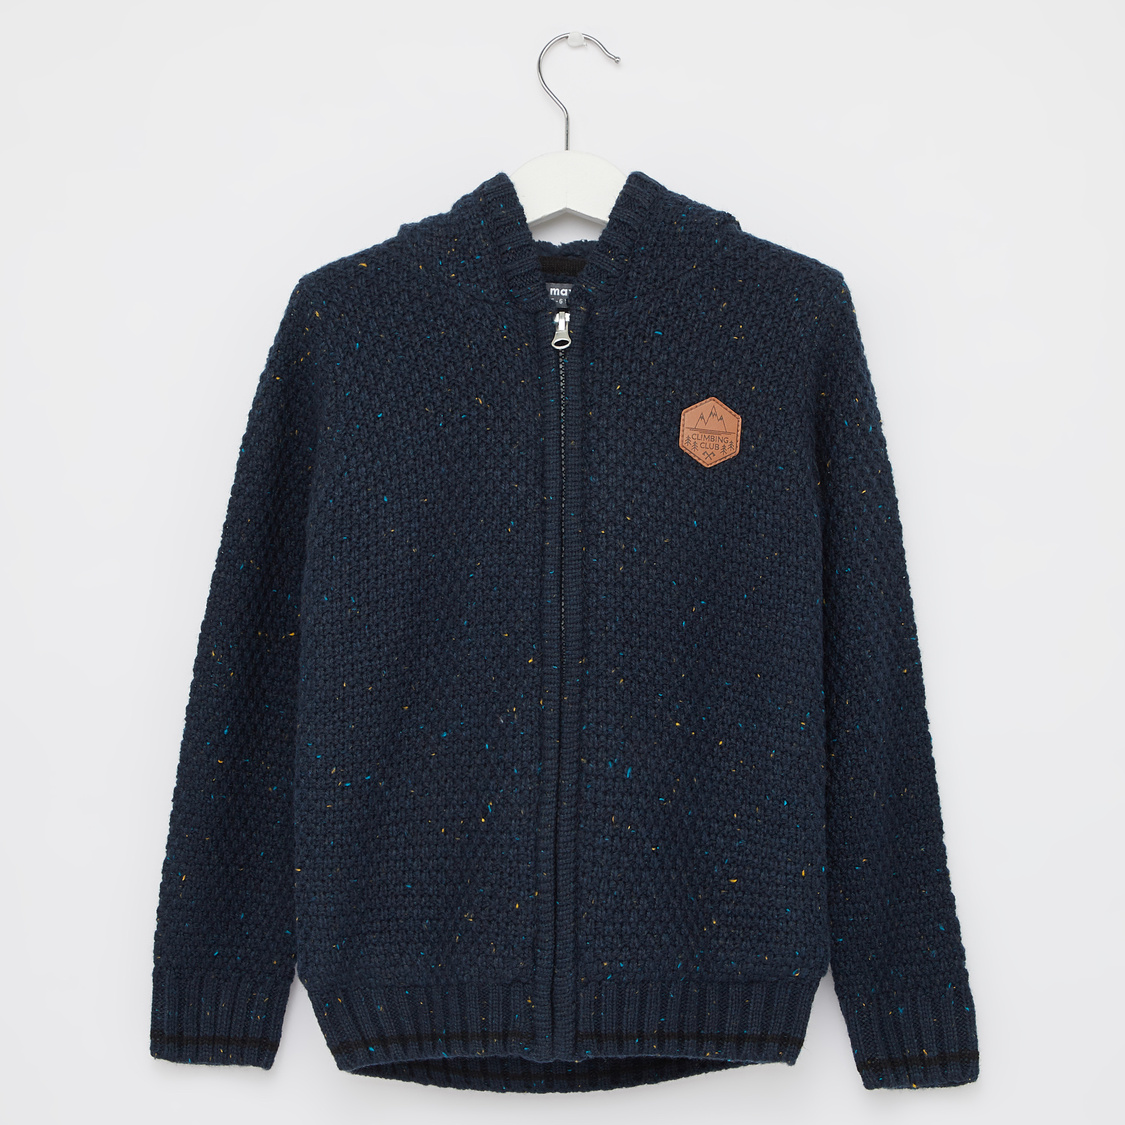 Knitted Hooded Sweater with Long Sleeves and Zip Closure